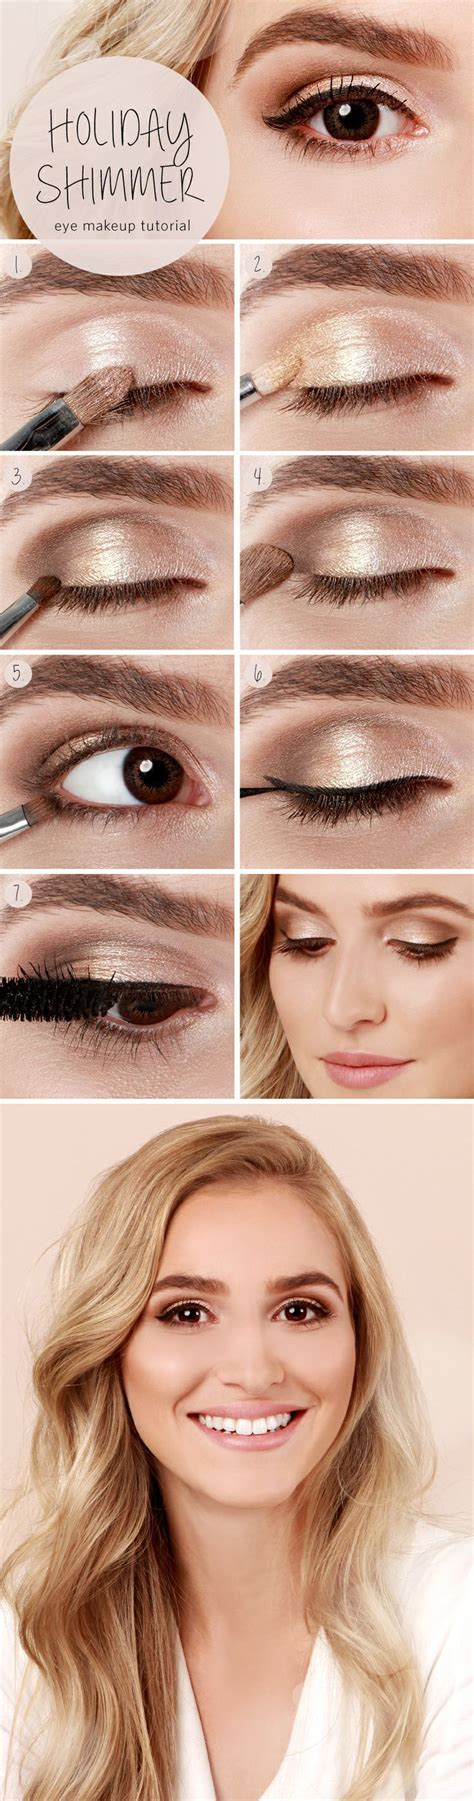 Eyeshadow Recommended 10 eye makeup tutorials from to turn you into a